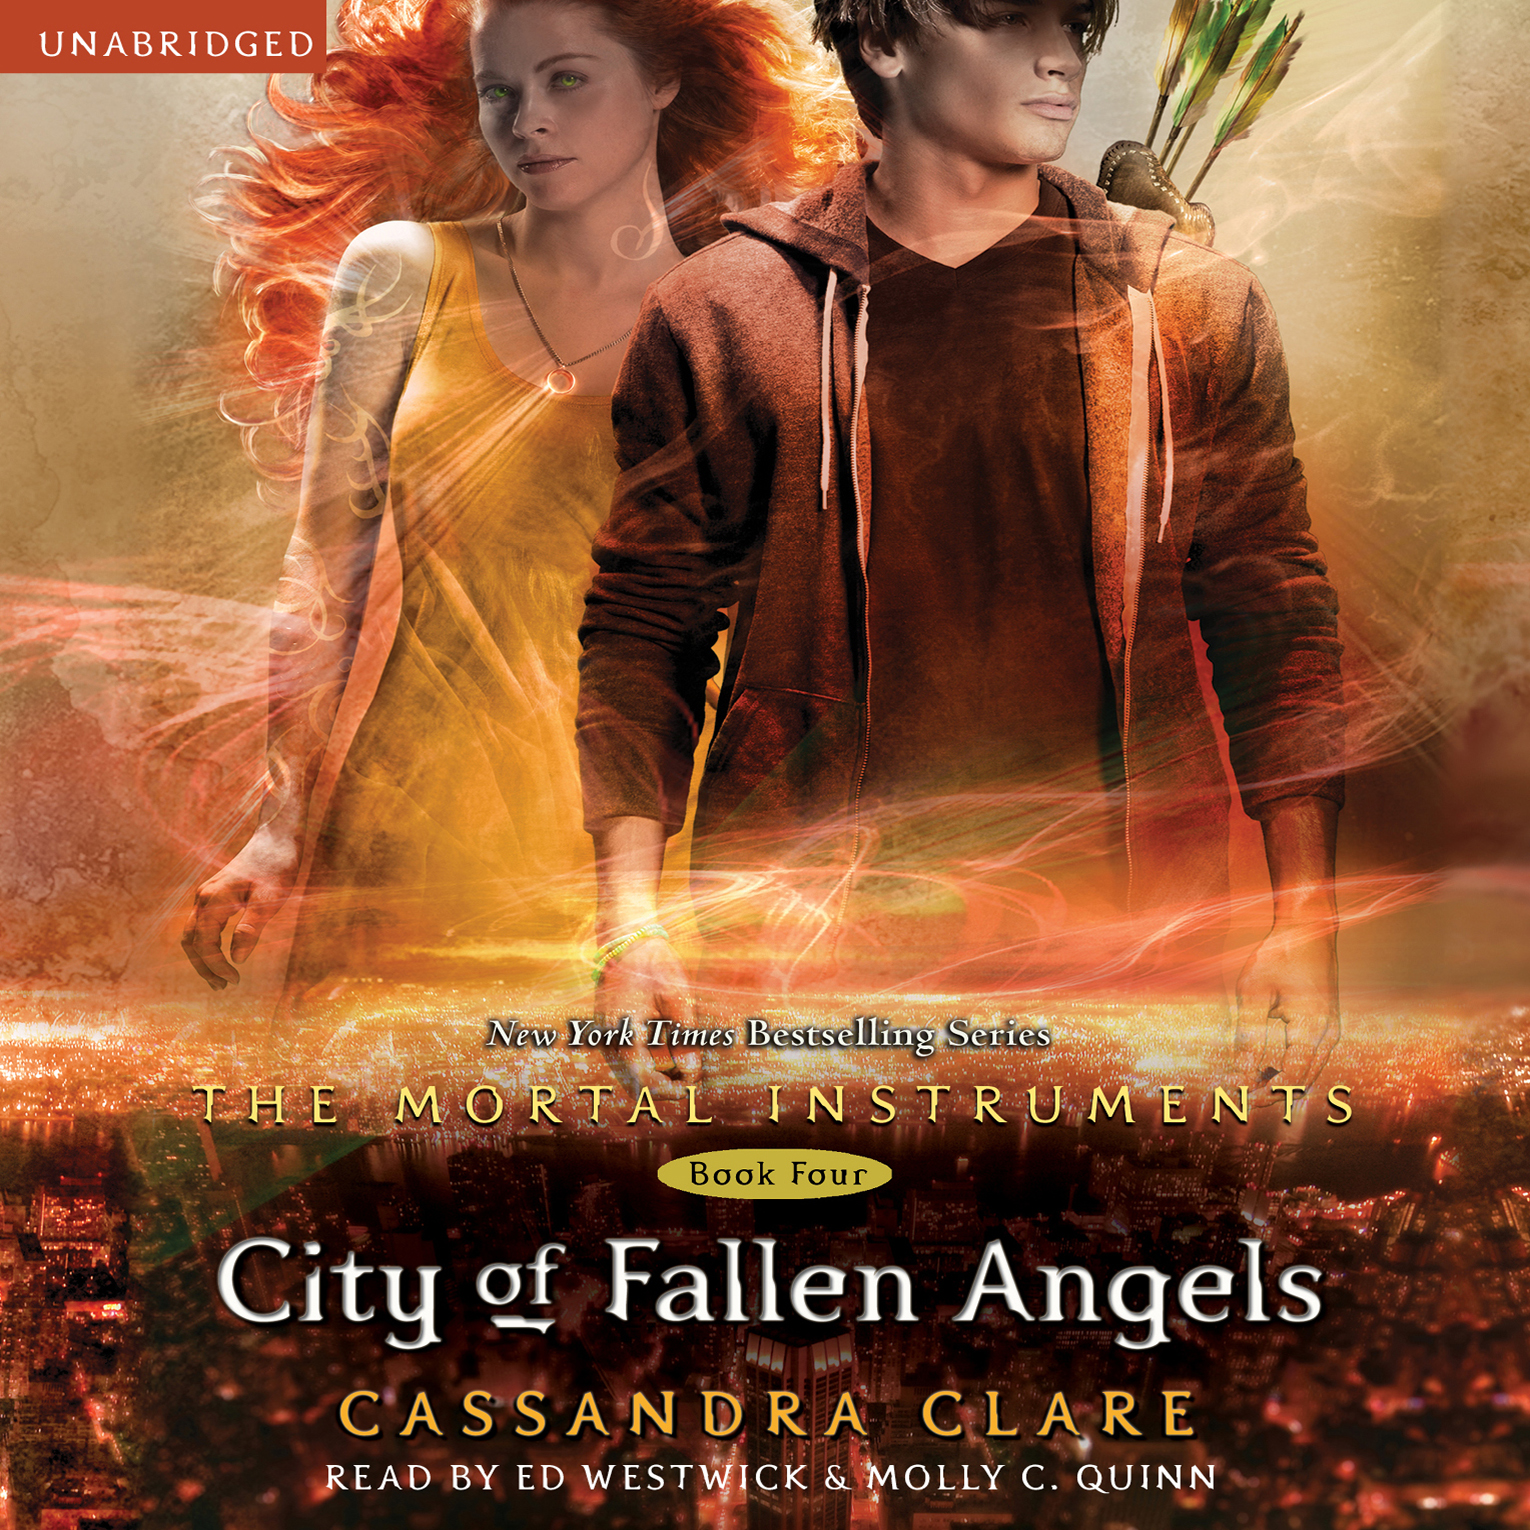 The Mortal Instruments, Book 4 (Chapterized) - Cassandra Clare